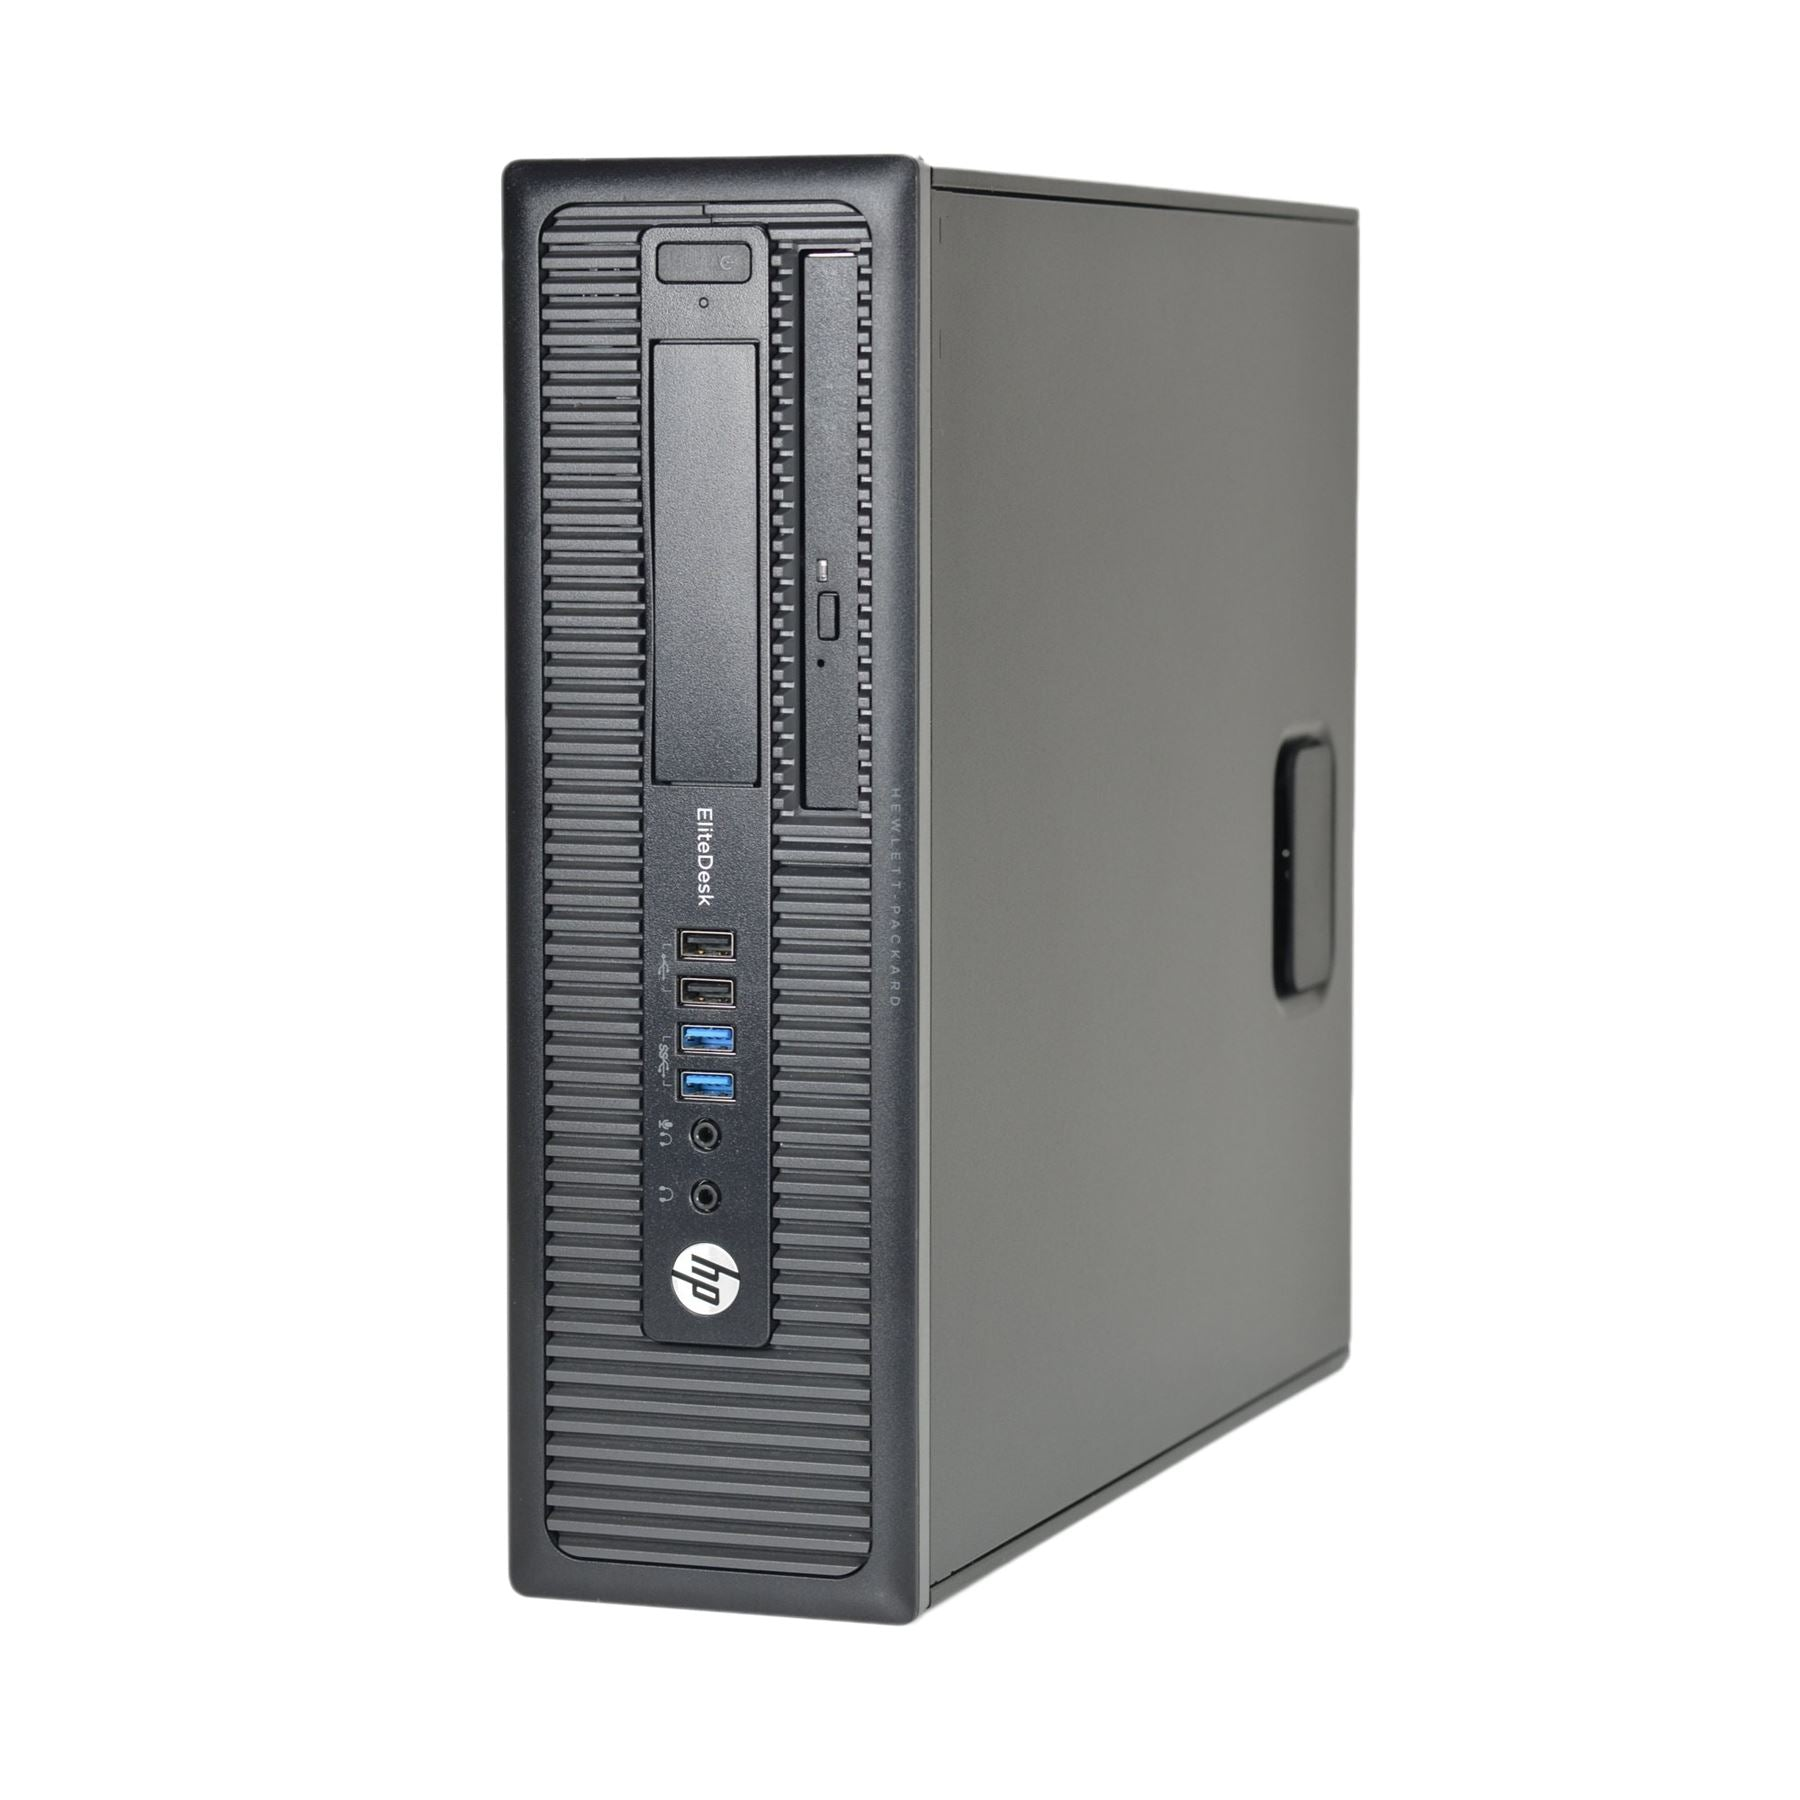 Gaming PC HP EliteDesk 800 G1 i3 4th Gen. GT710 8GB RAM 128GB SSD